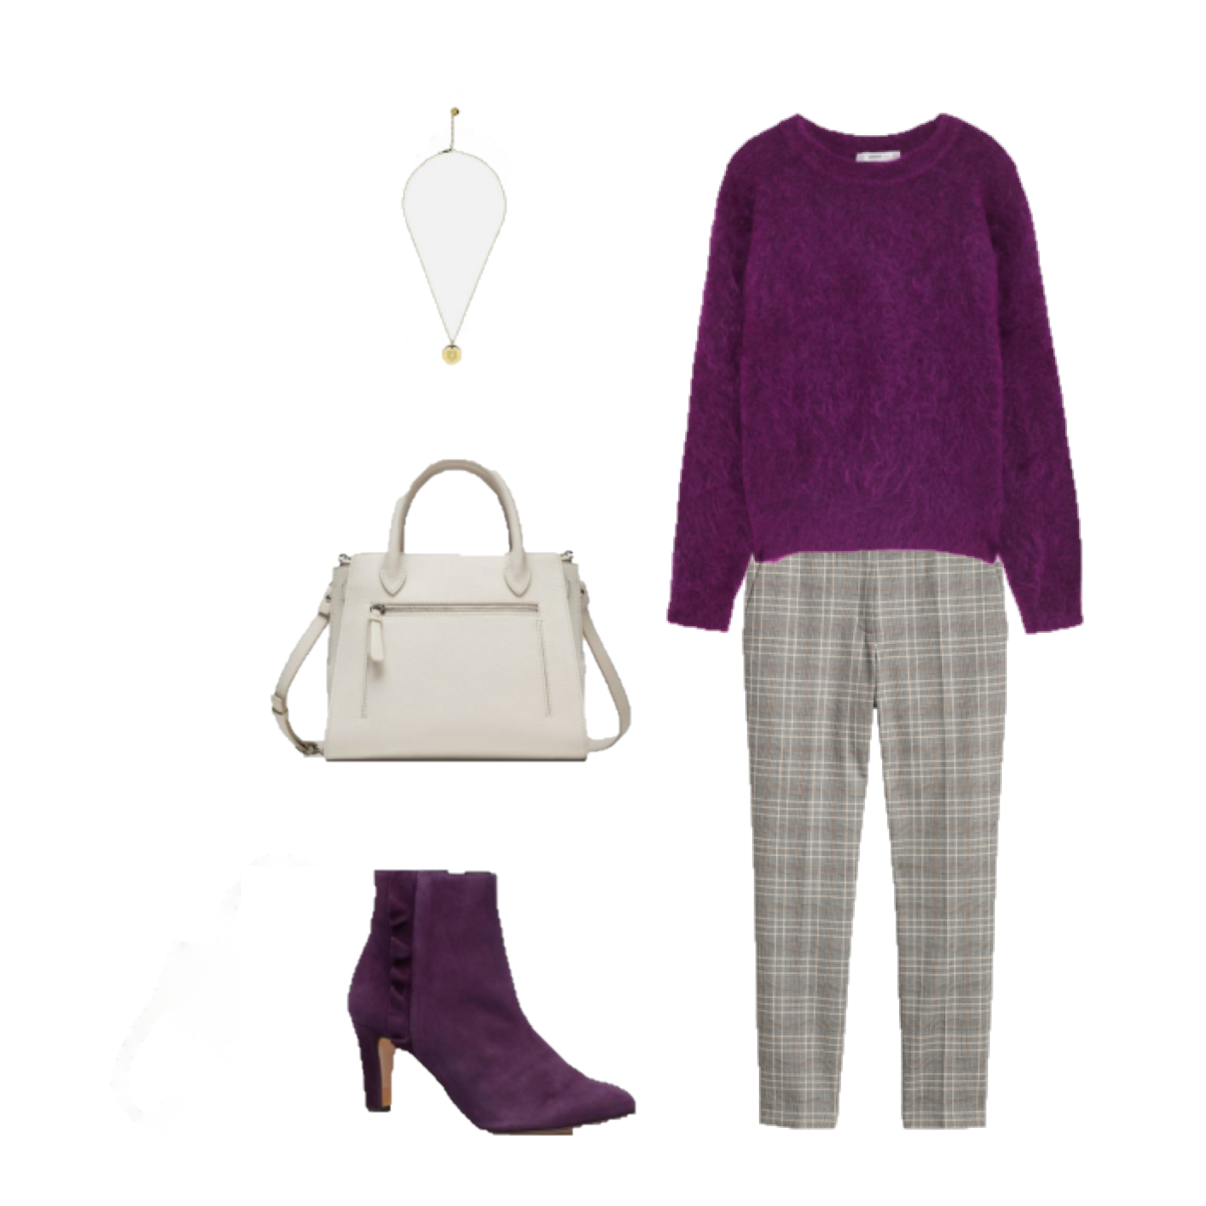 6282f3f9fb Outfit of the day  a purple sweater for the office